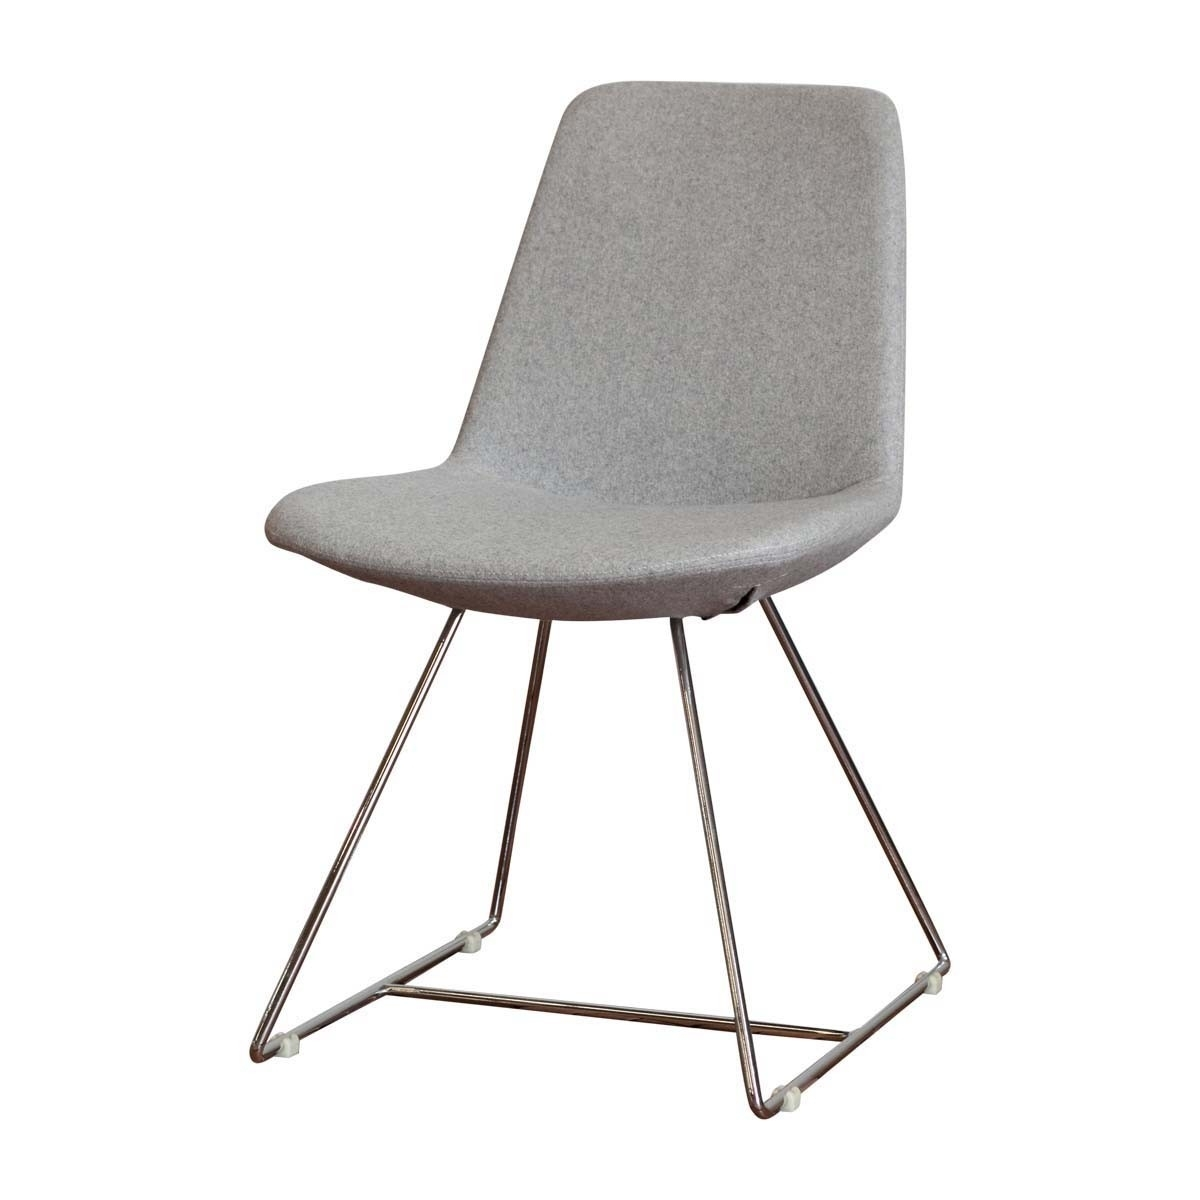 Chrome Dining Chairs With Current Life Interiors – Parker Chrome Dining Chair (Grey) – Modern Dining (View 11 of 25)